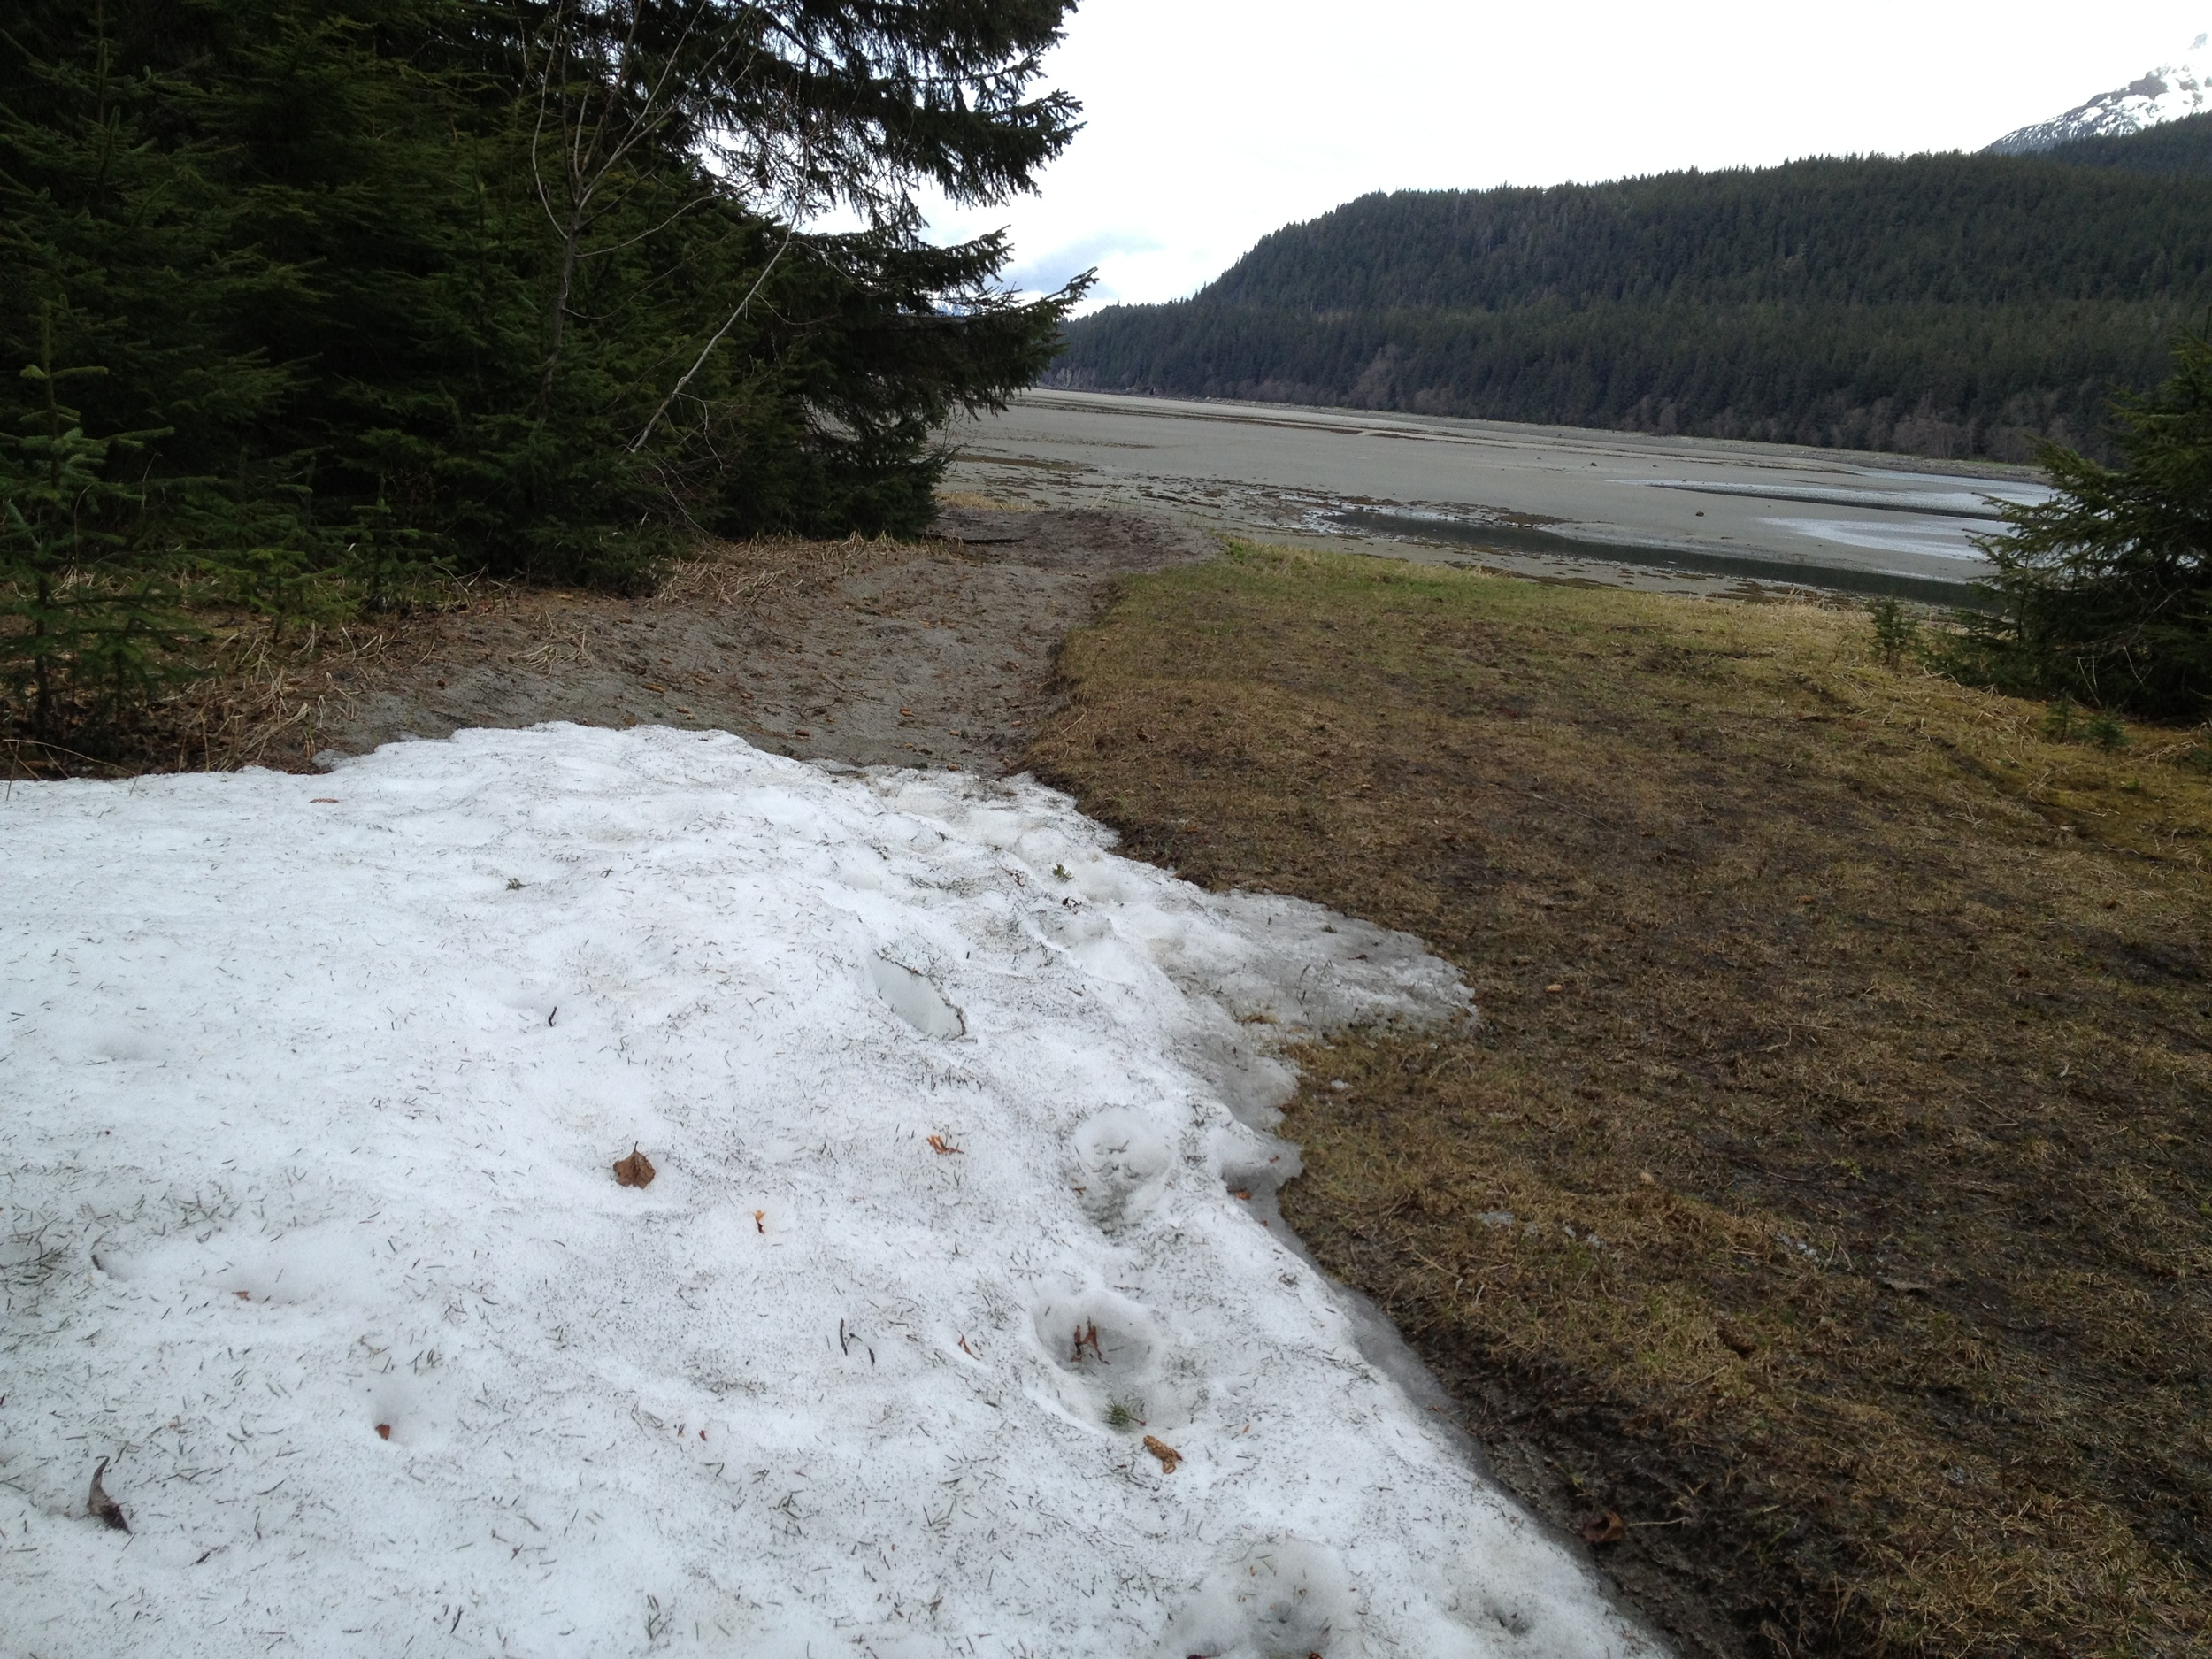 Snow at Echo Cove (north of Juneau) on May 17, 2013.